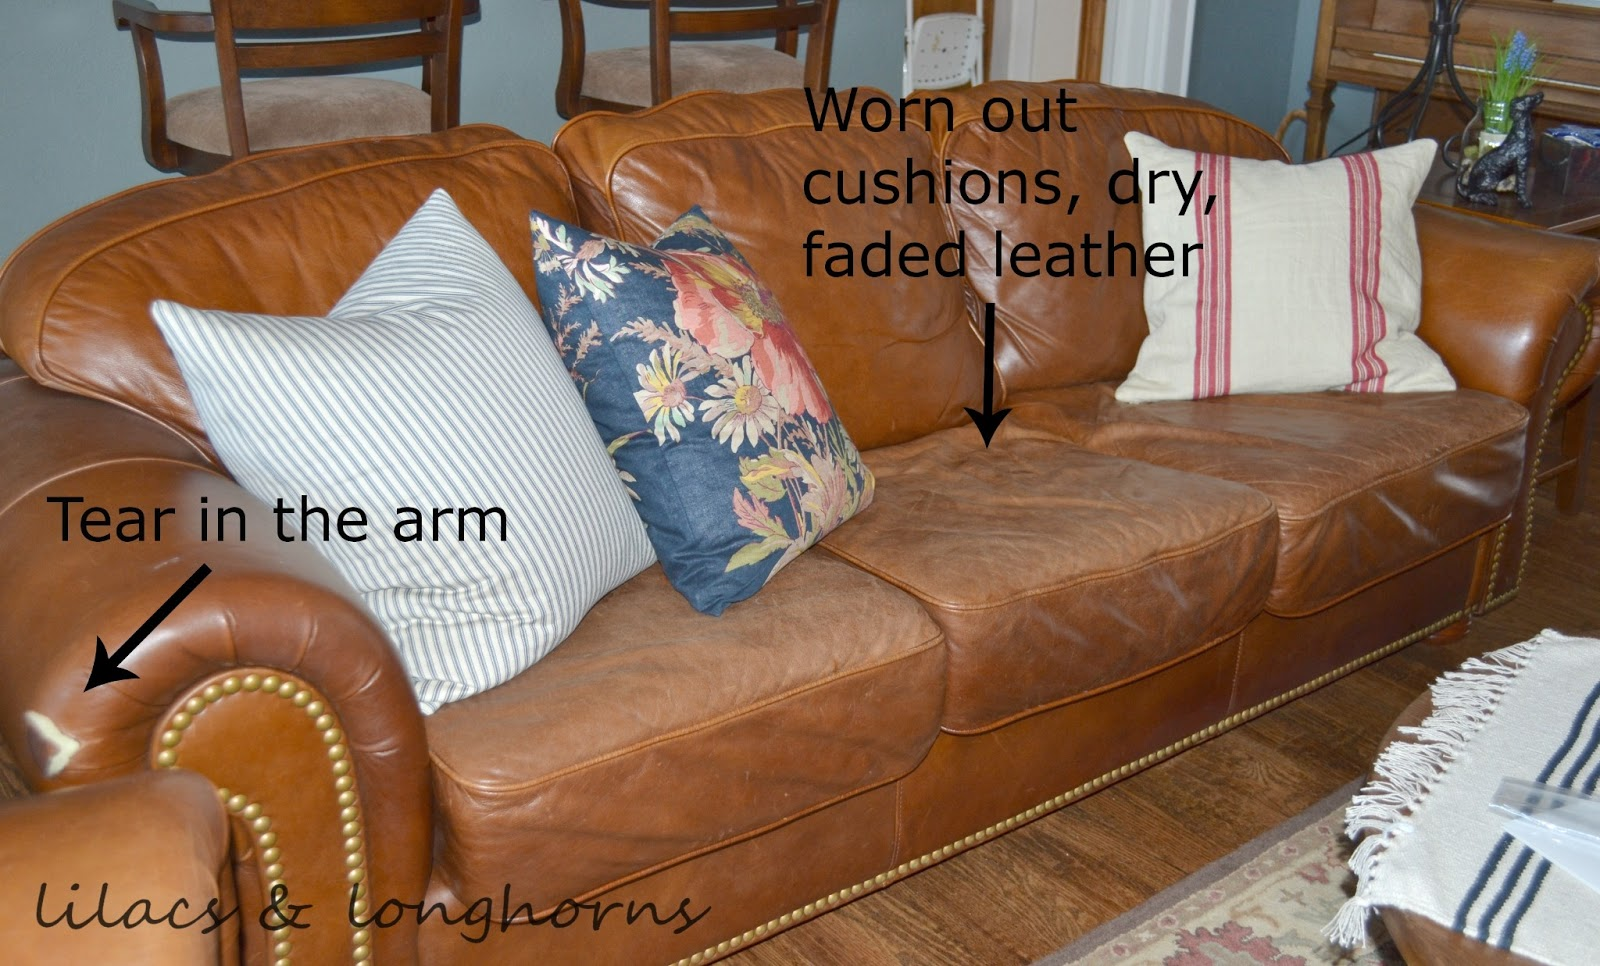 ... The Leather Was Dry And Worn And The Couch Had A Few Stains On The Seat  Cushions. Oh, And There Was Also A Tear On One Of The Arms.